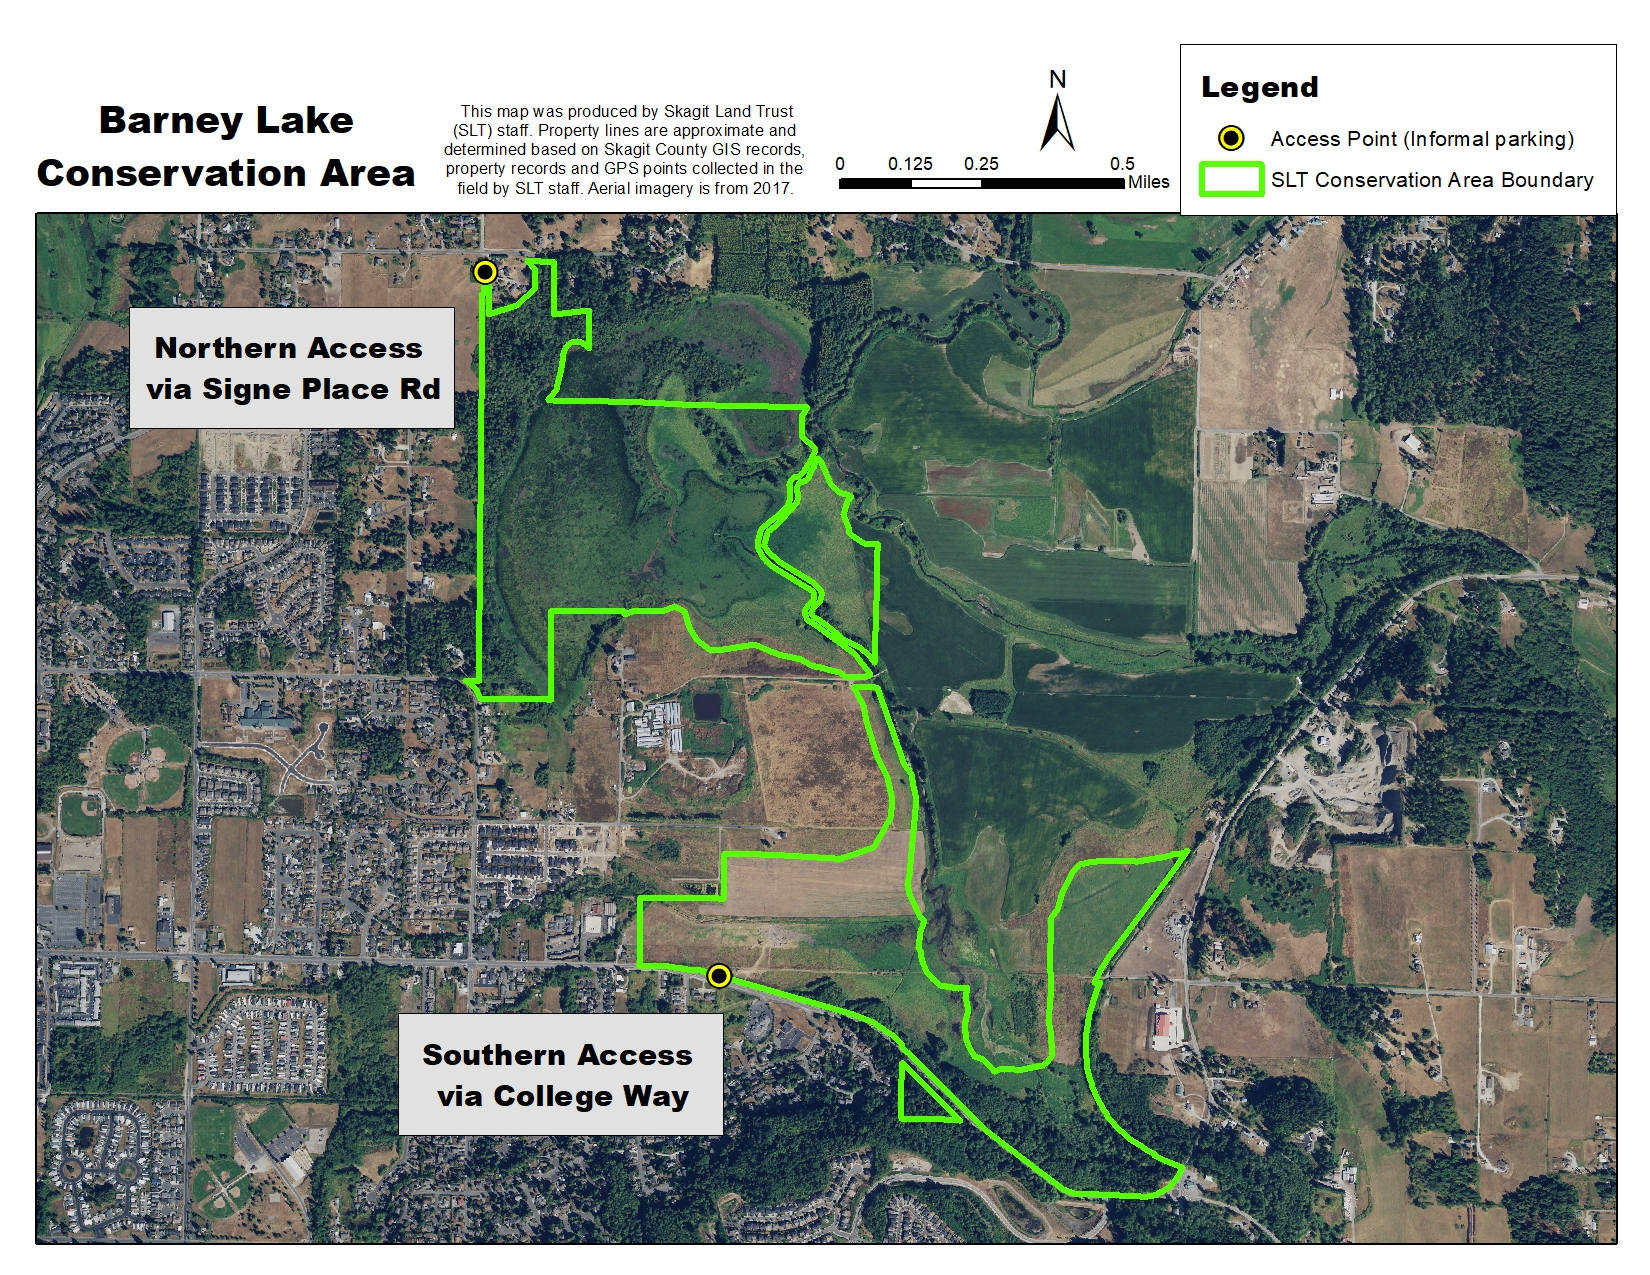 Skagit Land Trust GIS map: Barney Lake access